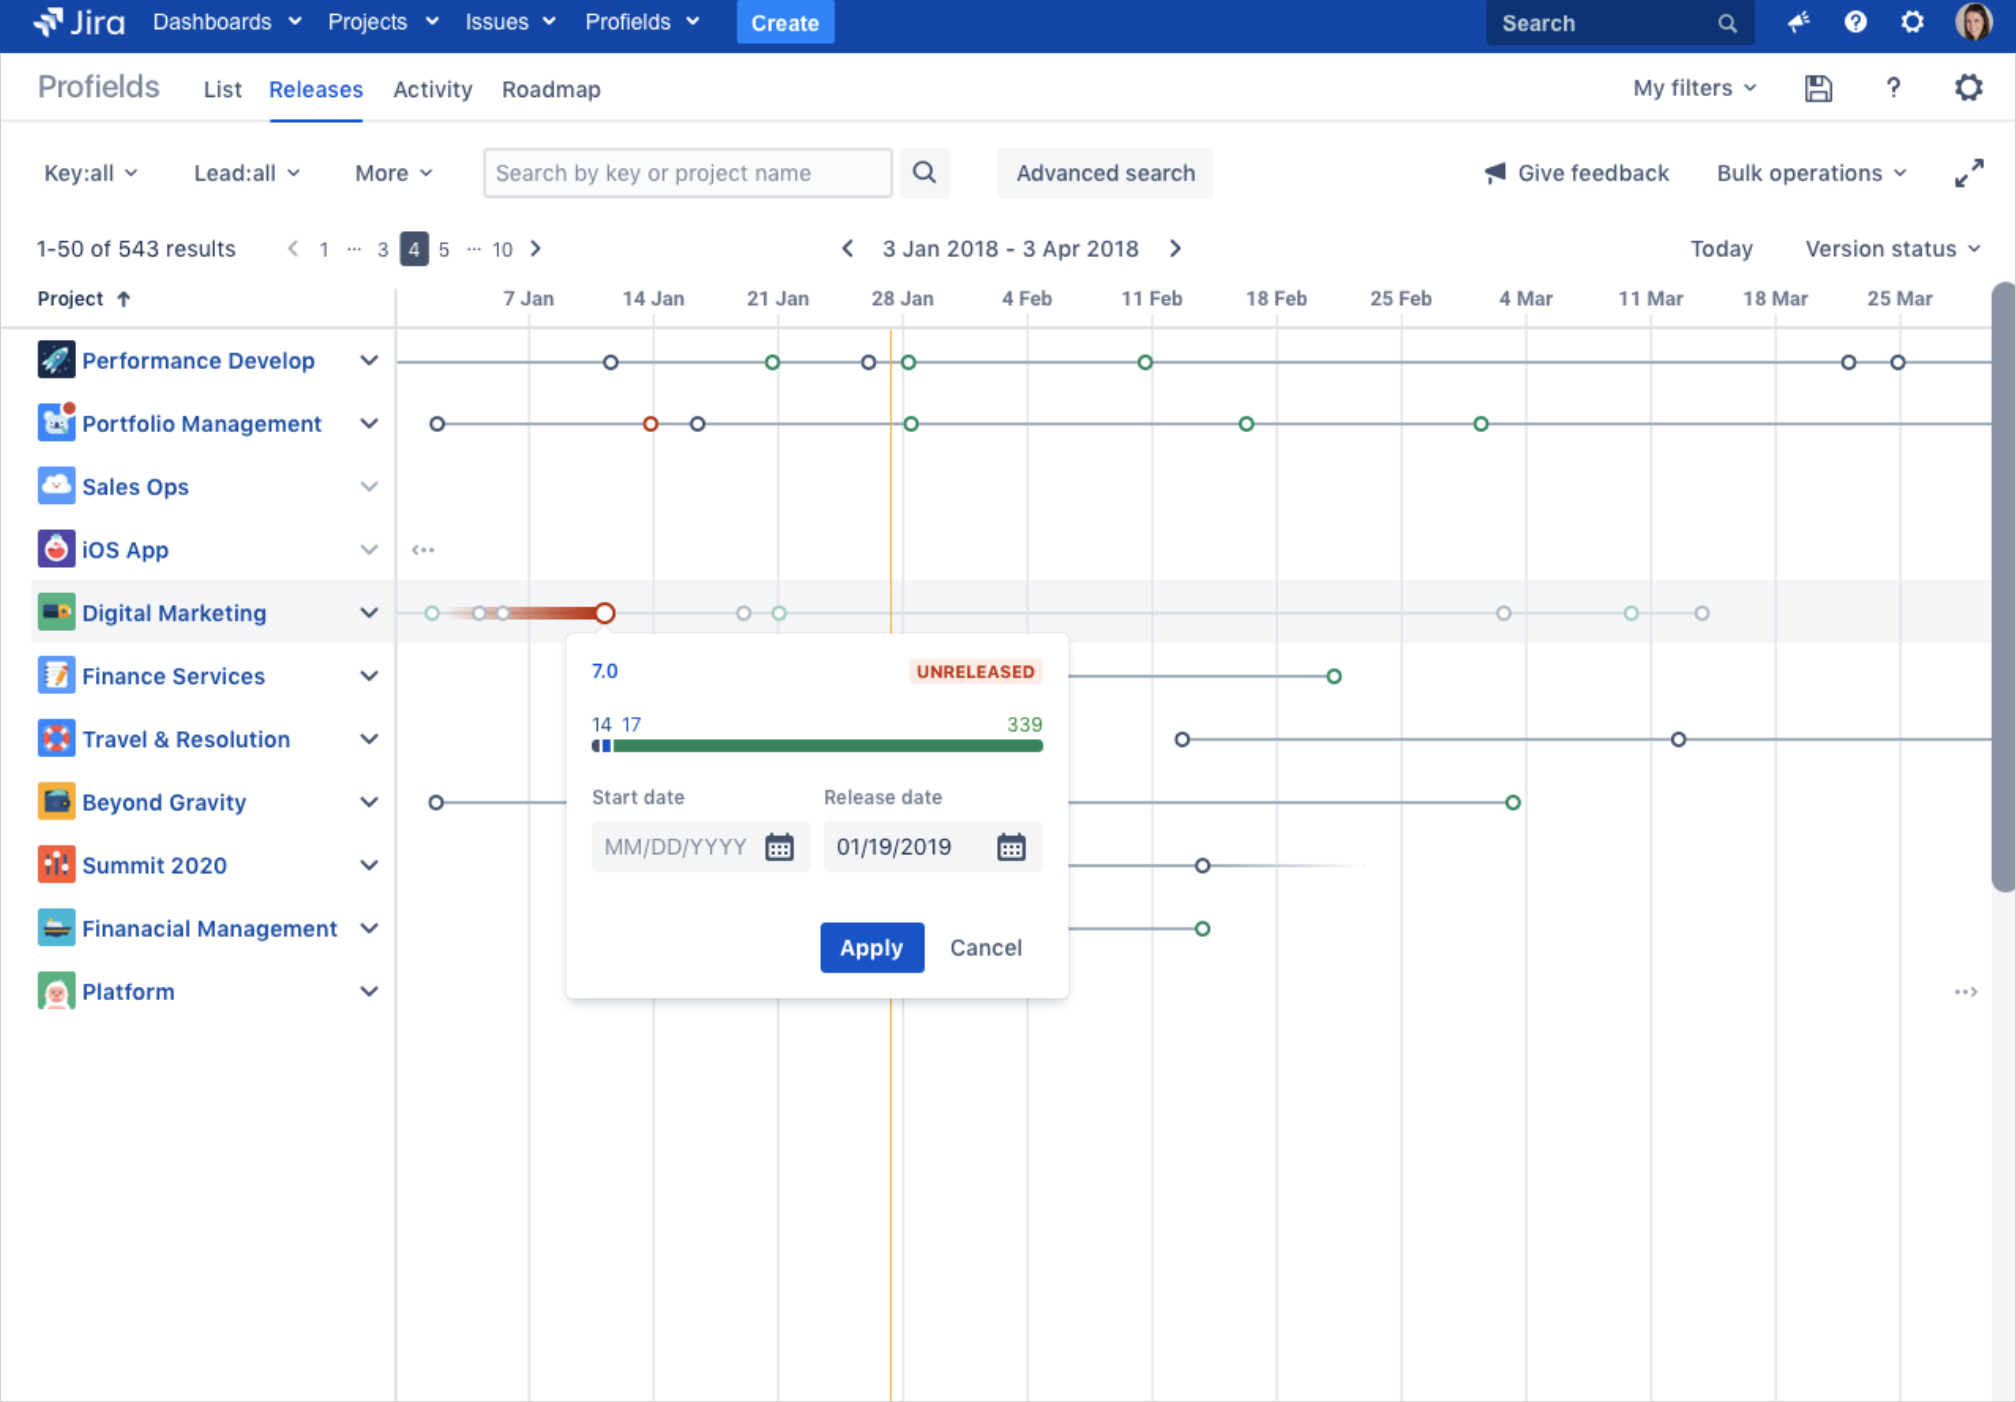 The Releases View, a feature to track project releases in Jira with Profields_trz